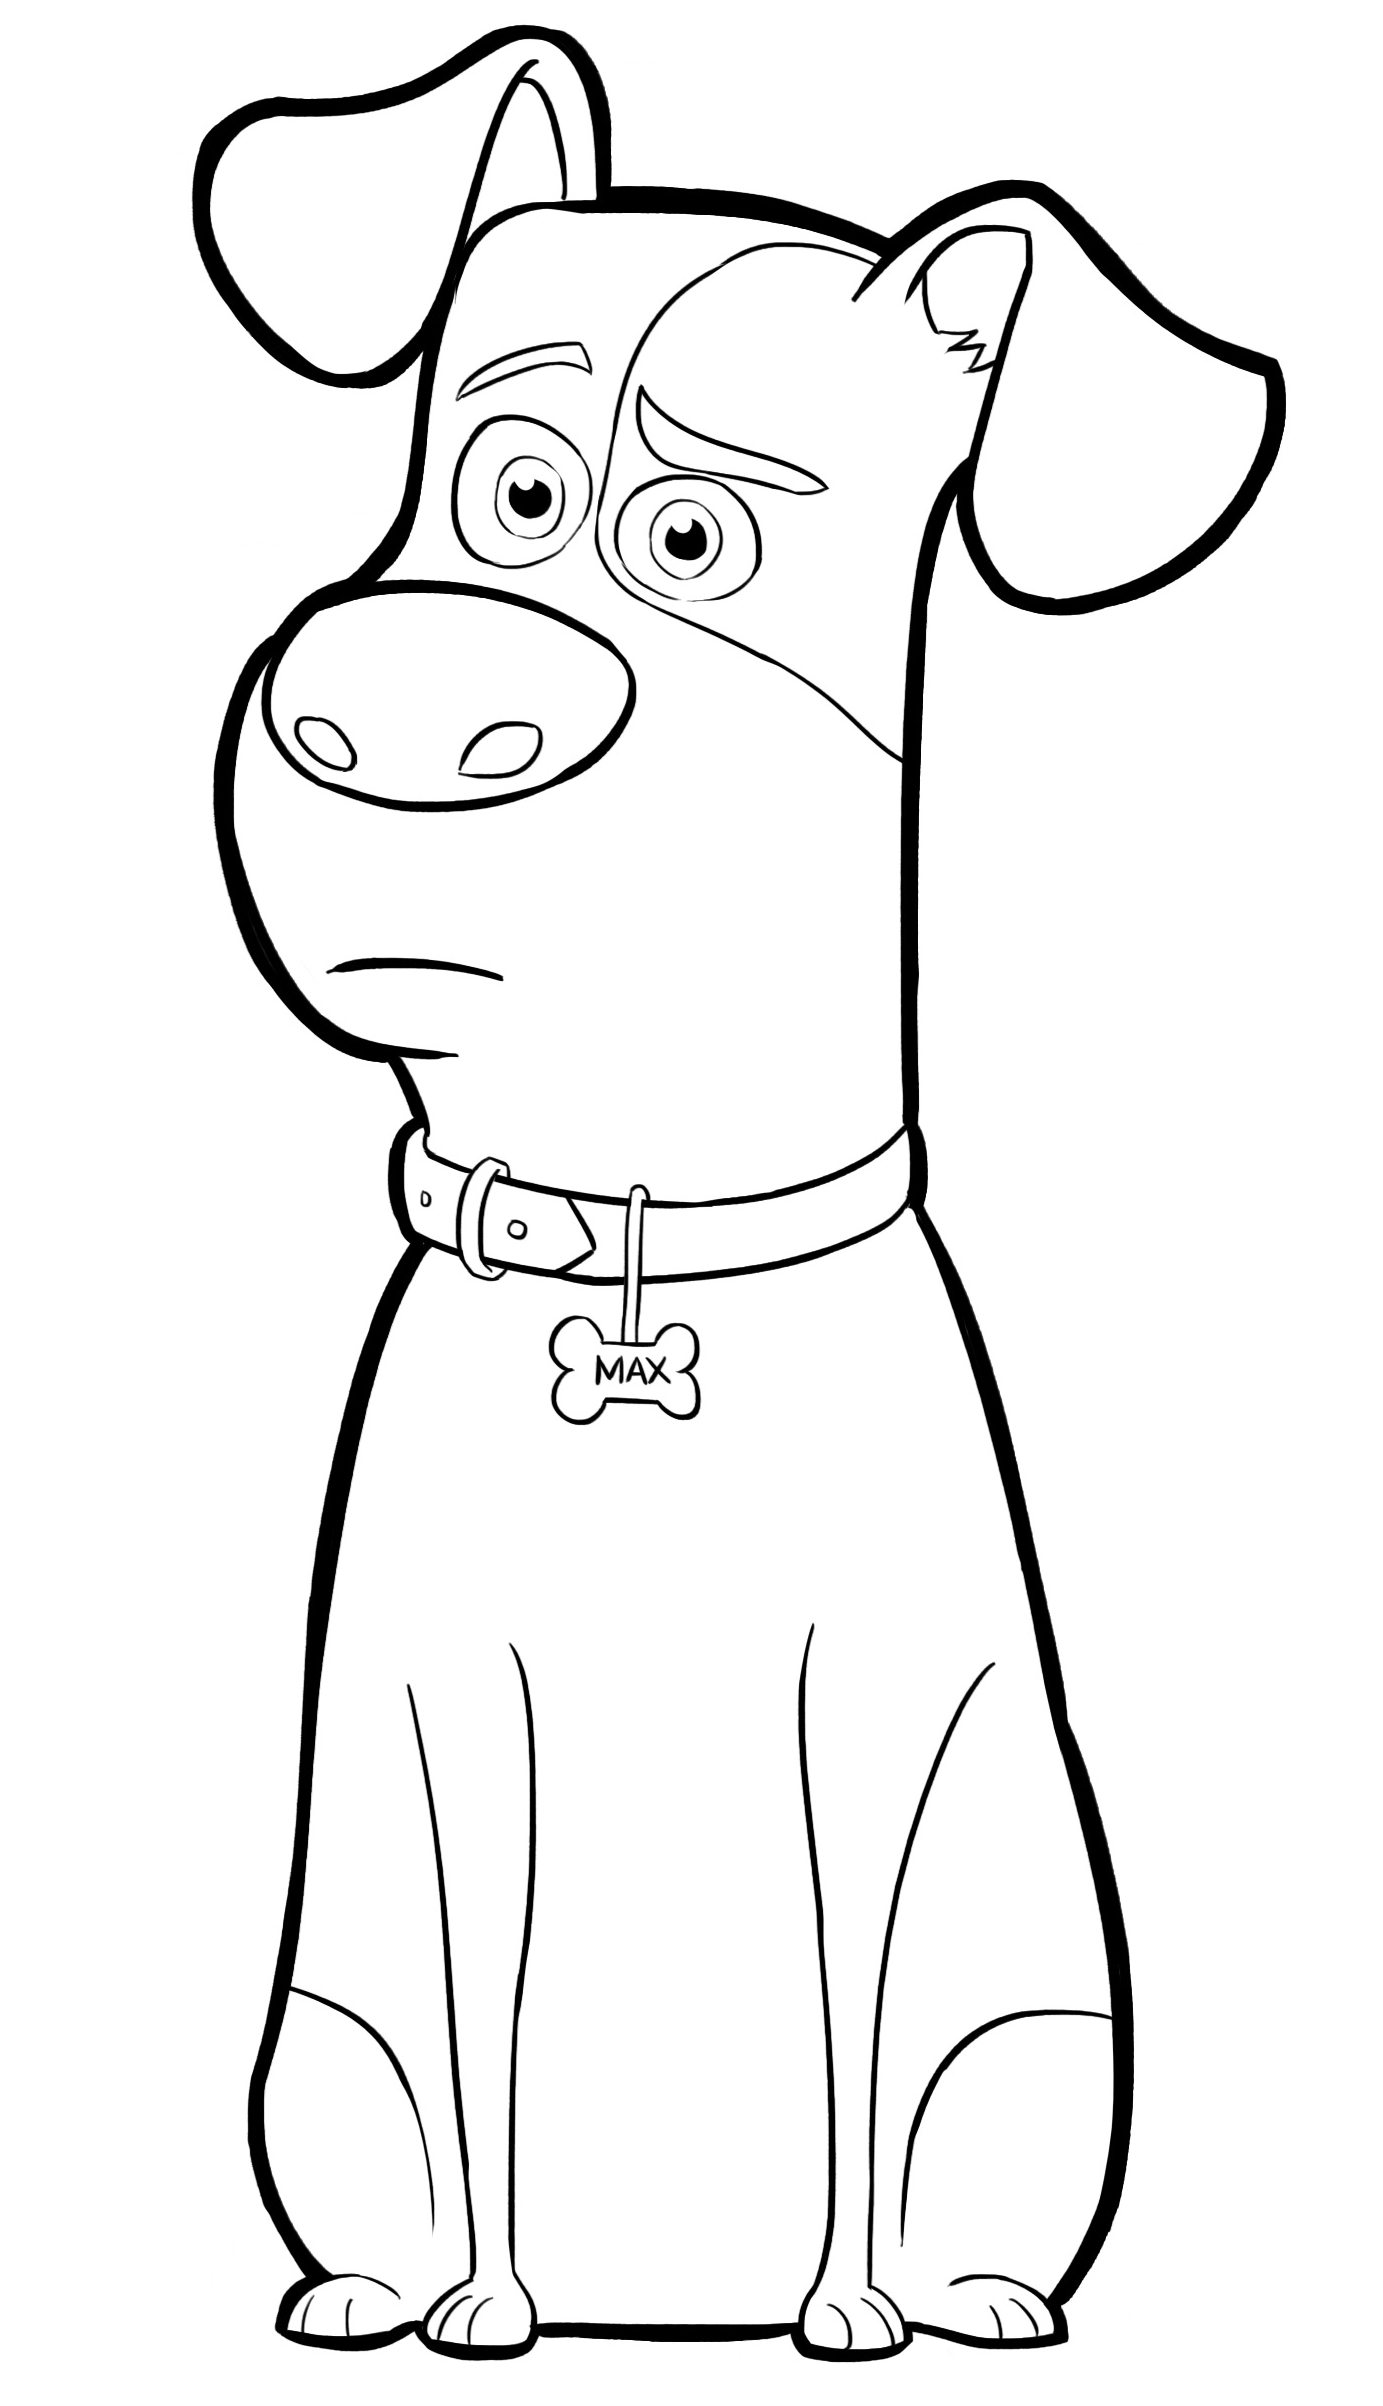 The Secret Life of Pets Coloring Pages - Best Coloring ...